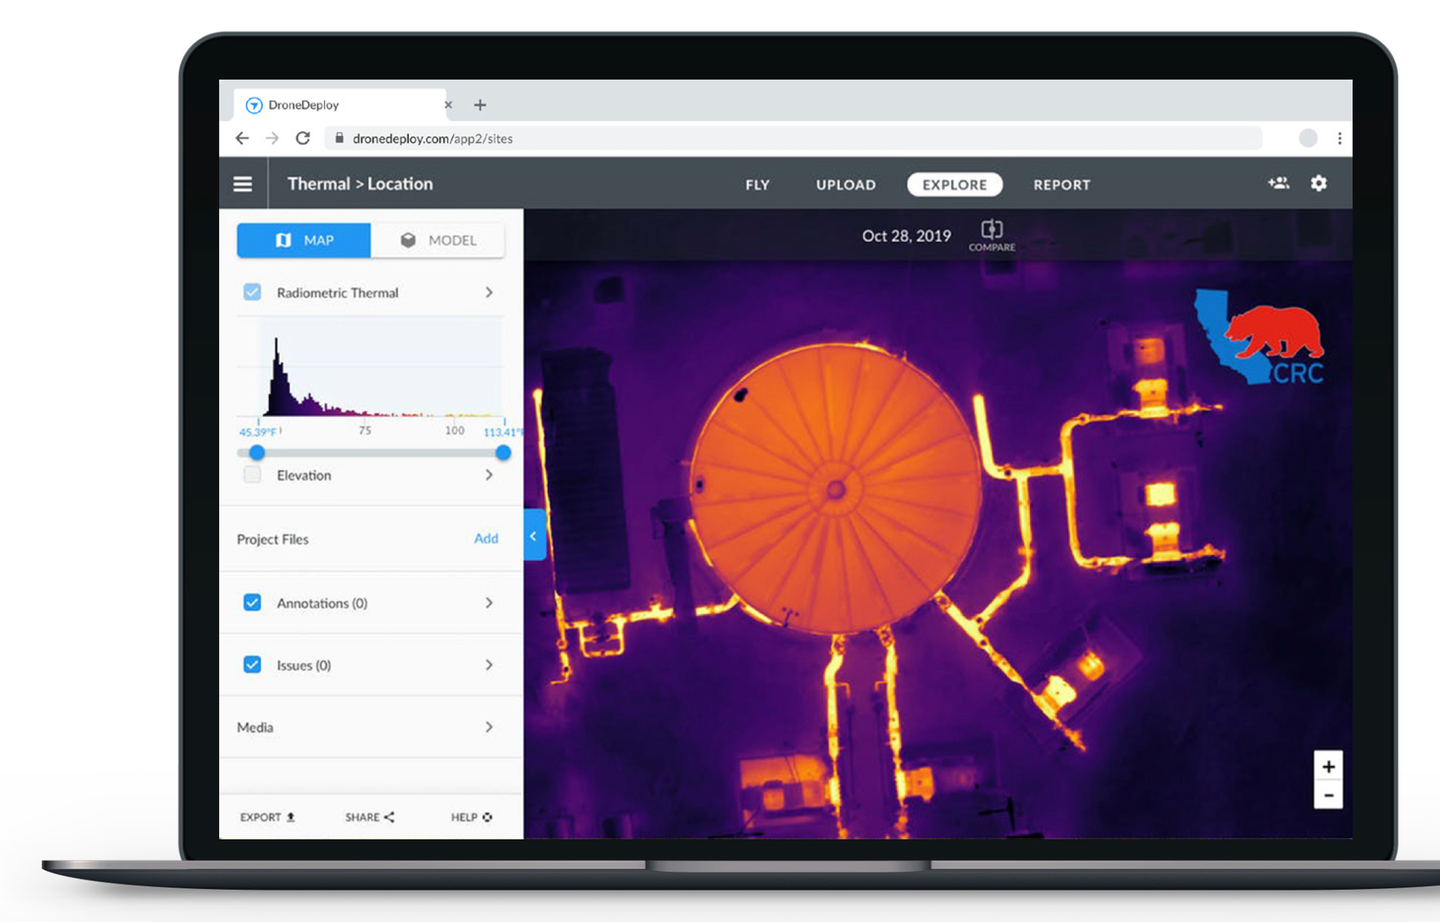 CRC uses DroneDeploy to fly and map thermal imagery and conduct thermal inspections.